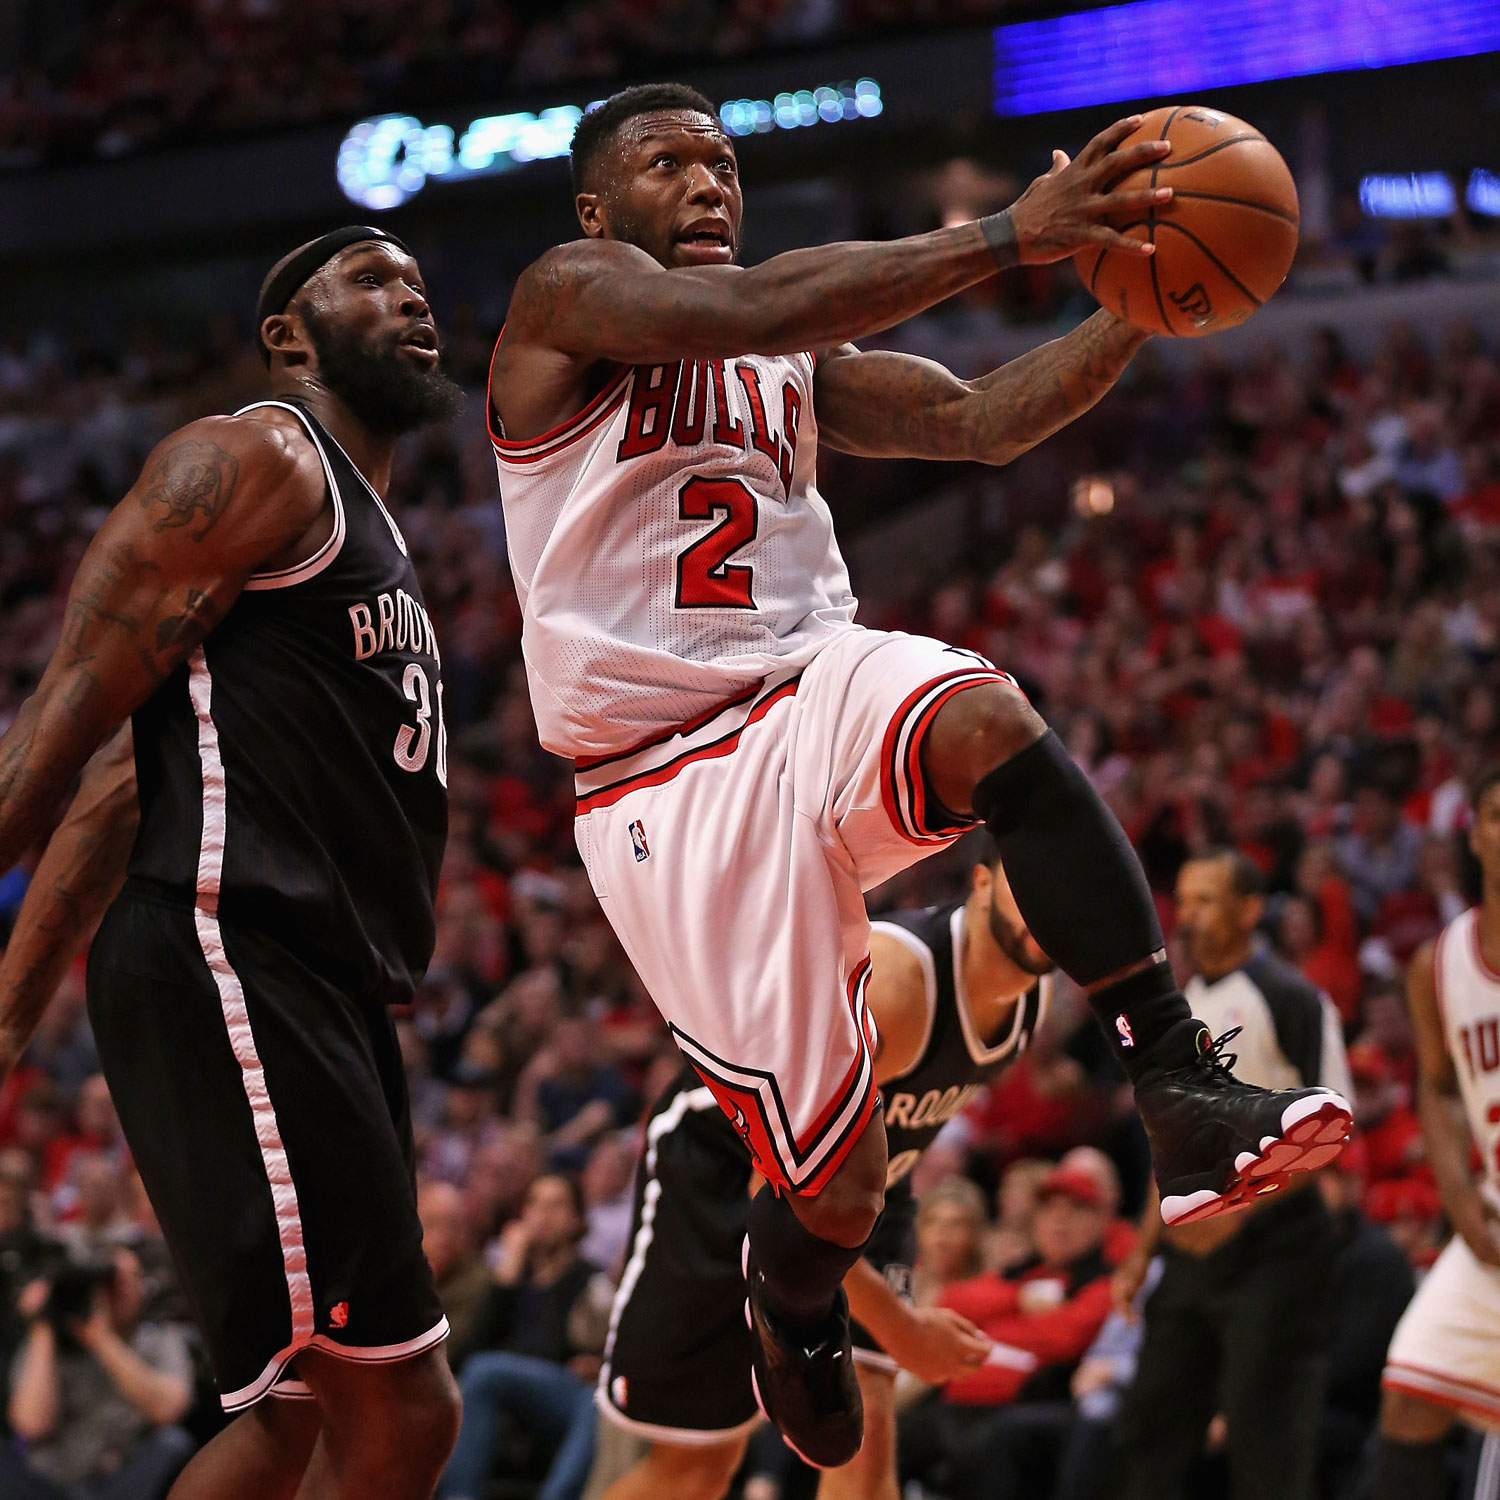 Nate Robinson against the Nets